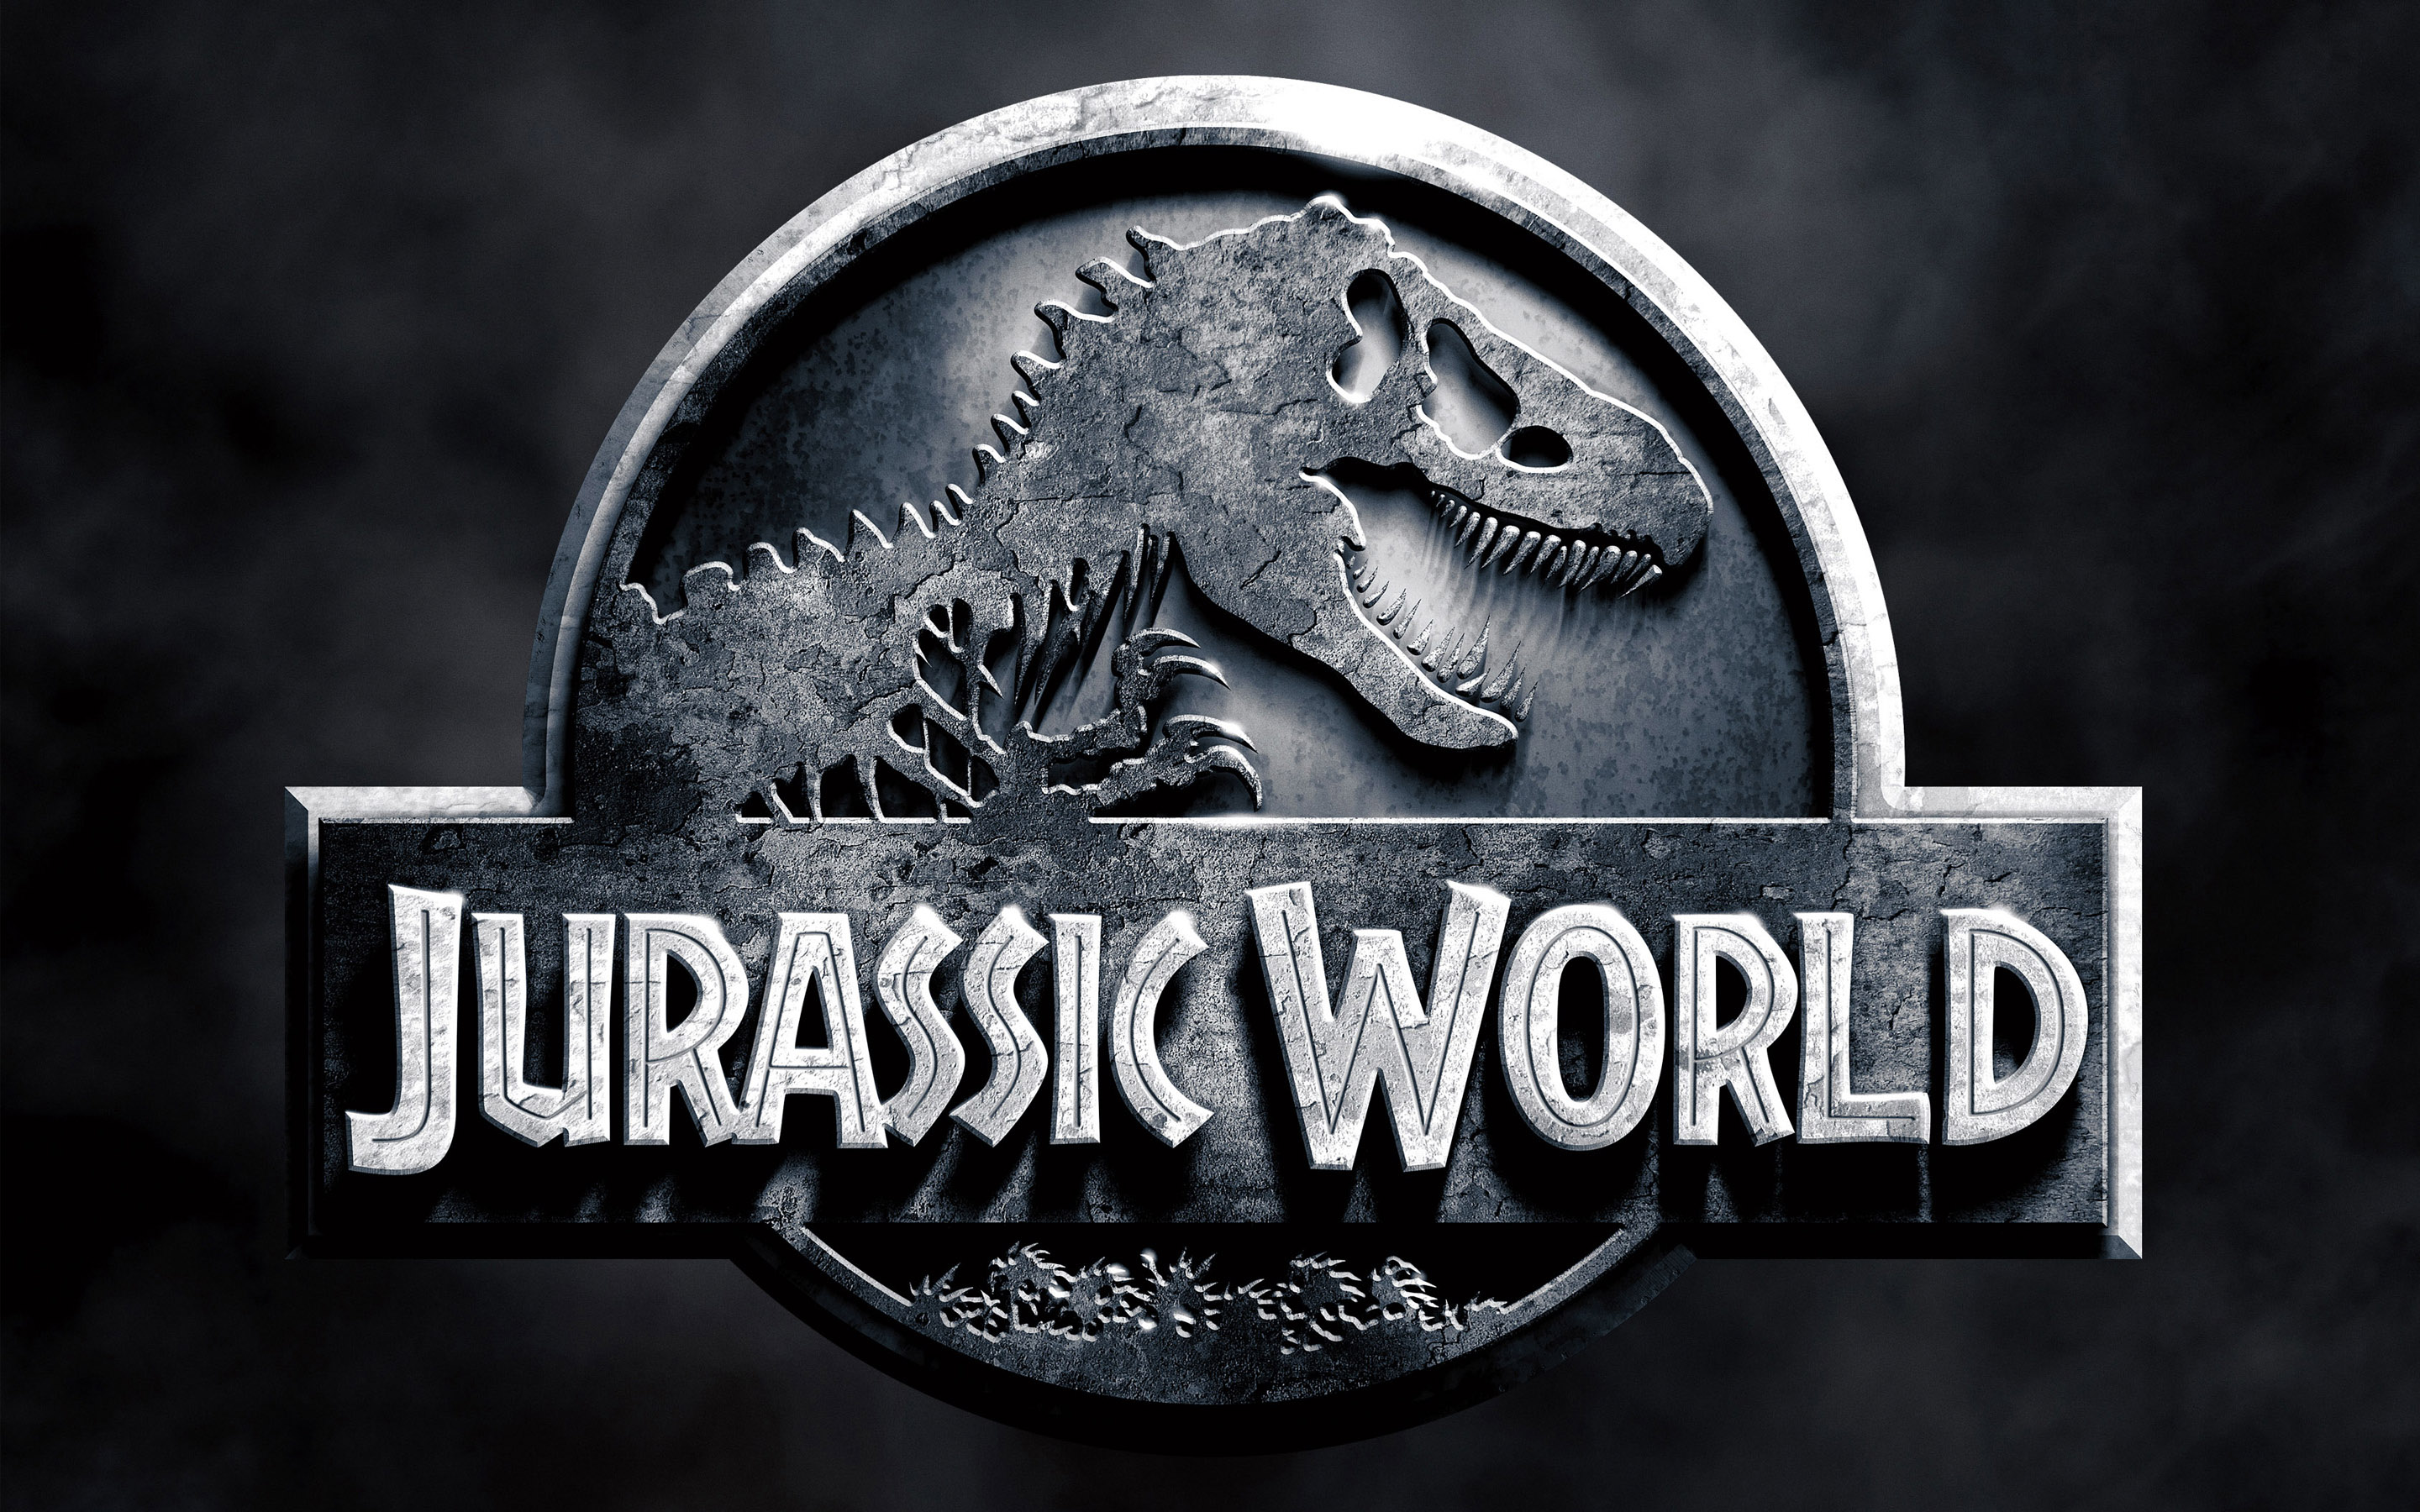 Jurassic World is content marketing for Mercedes